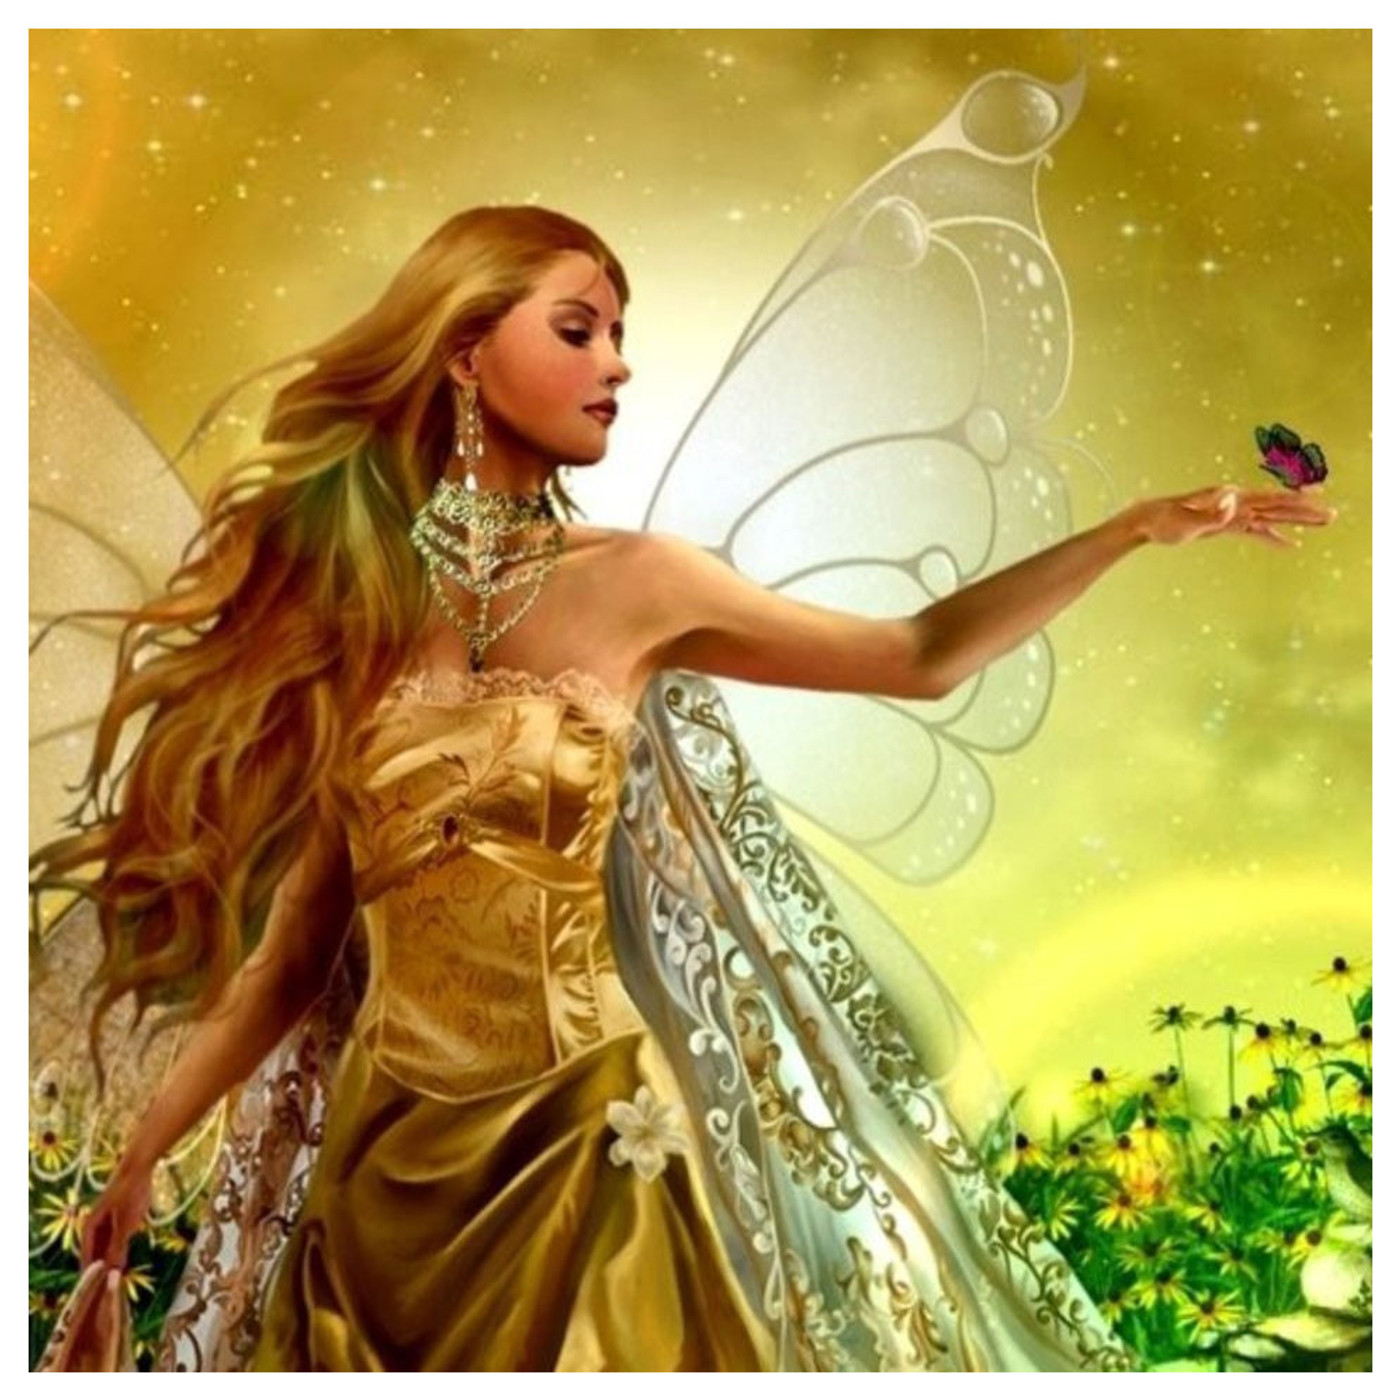 Fairy Wishing Spell, Summon Spirits of Light to Grant Your Wishes